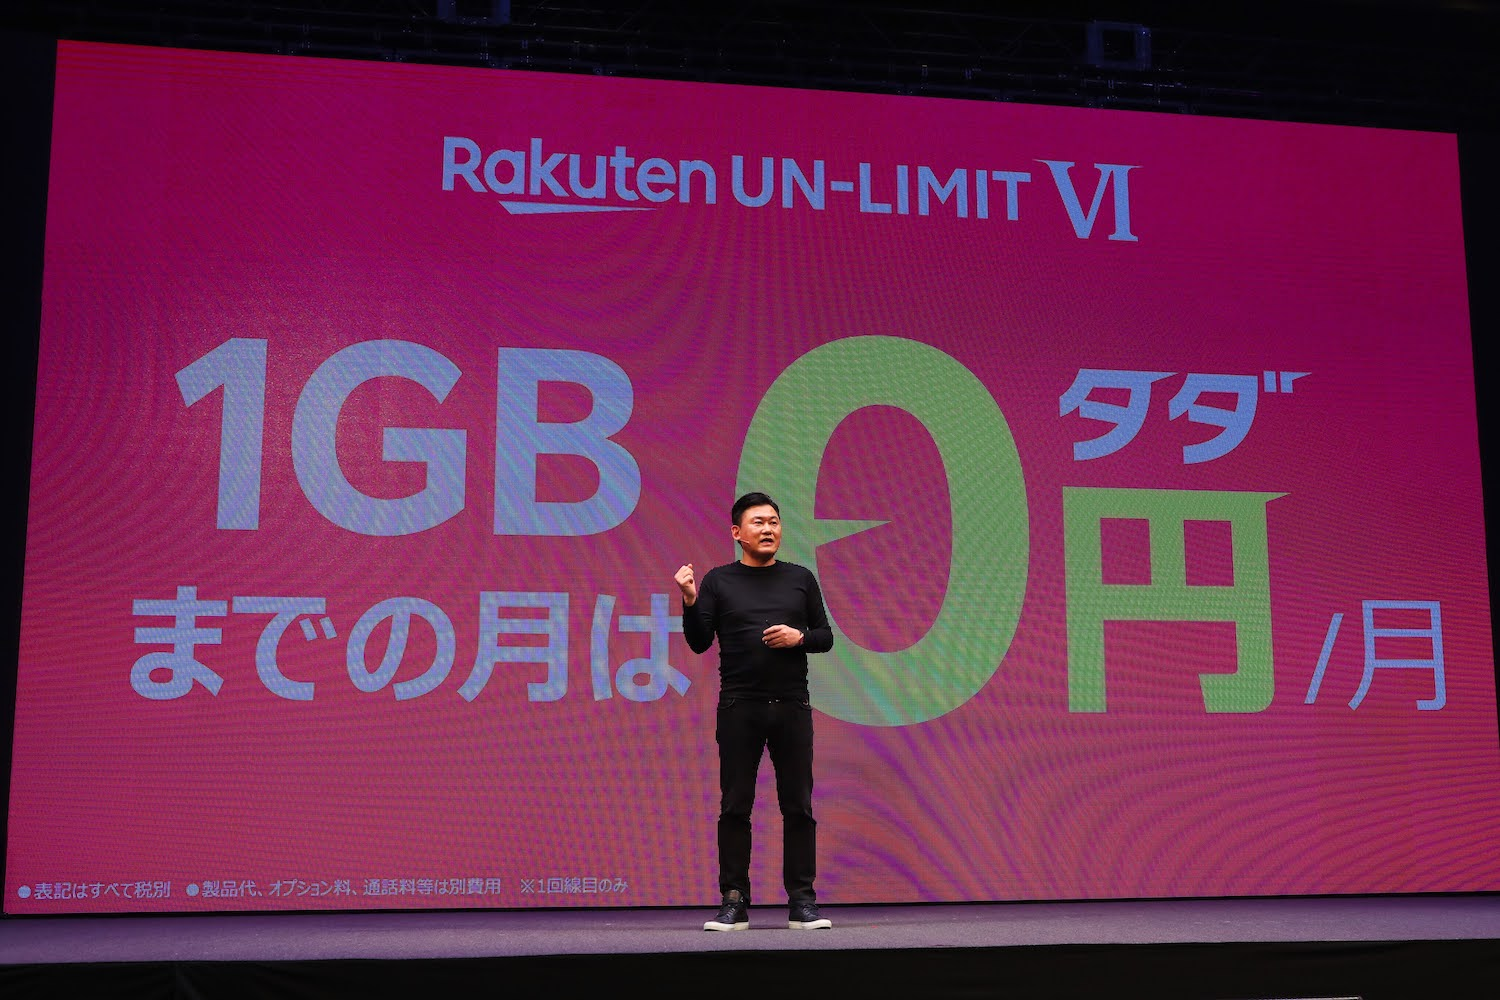 Rakuten Mobile's newly announced plan, Rakuten UN-LIMIT VI, automatically scales down in price for customers who use less data.